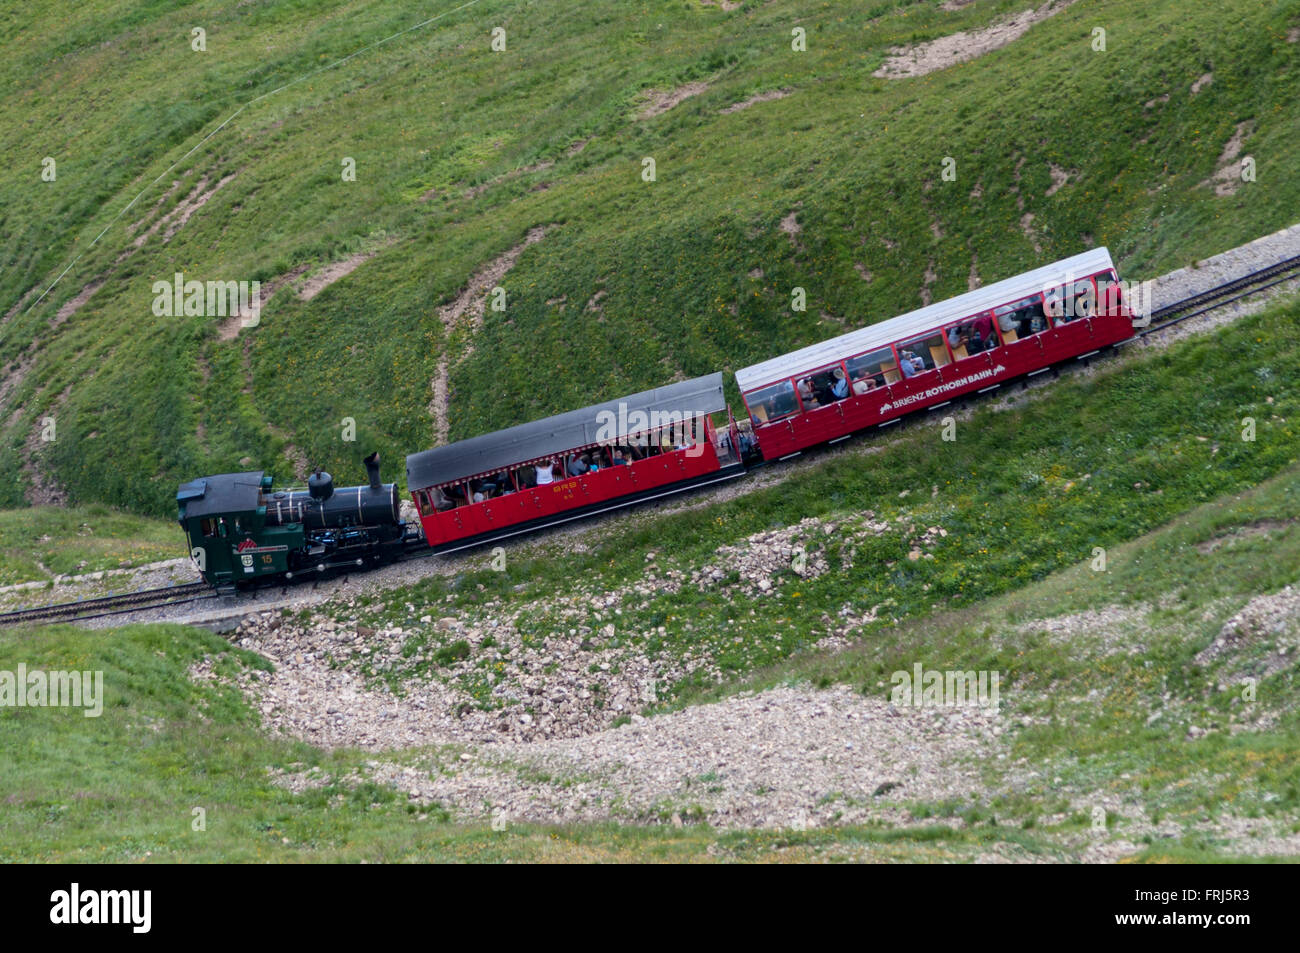 Steam train of the Brienz Rothorn Bahn rack railway below the summit (2252m). Brienz, Berner Oberland, Switzerland. - Stock Image